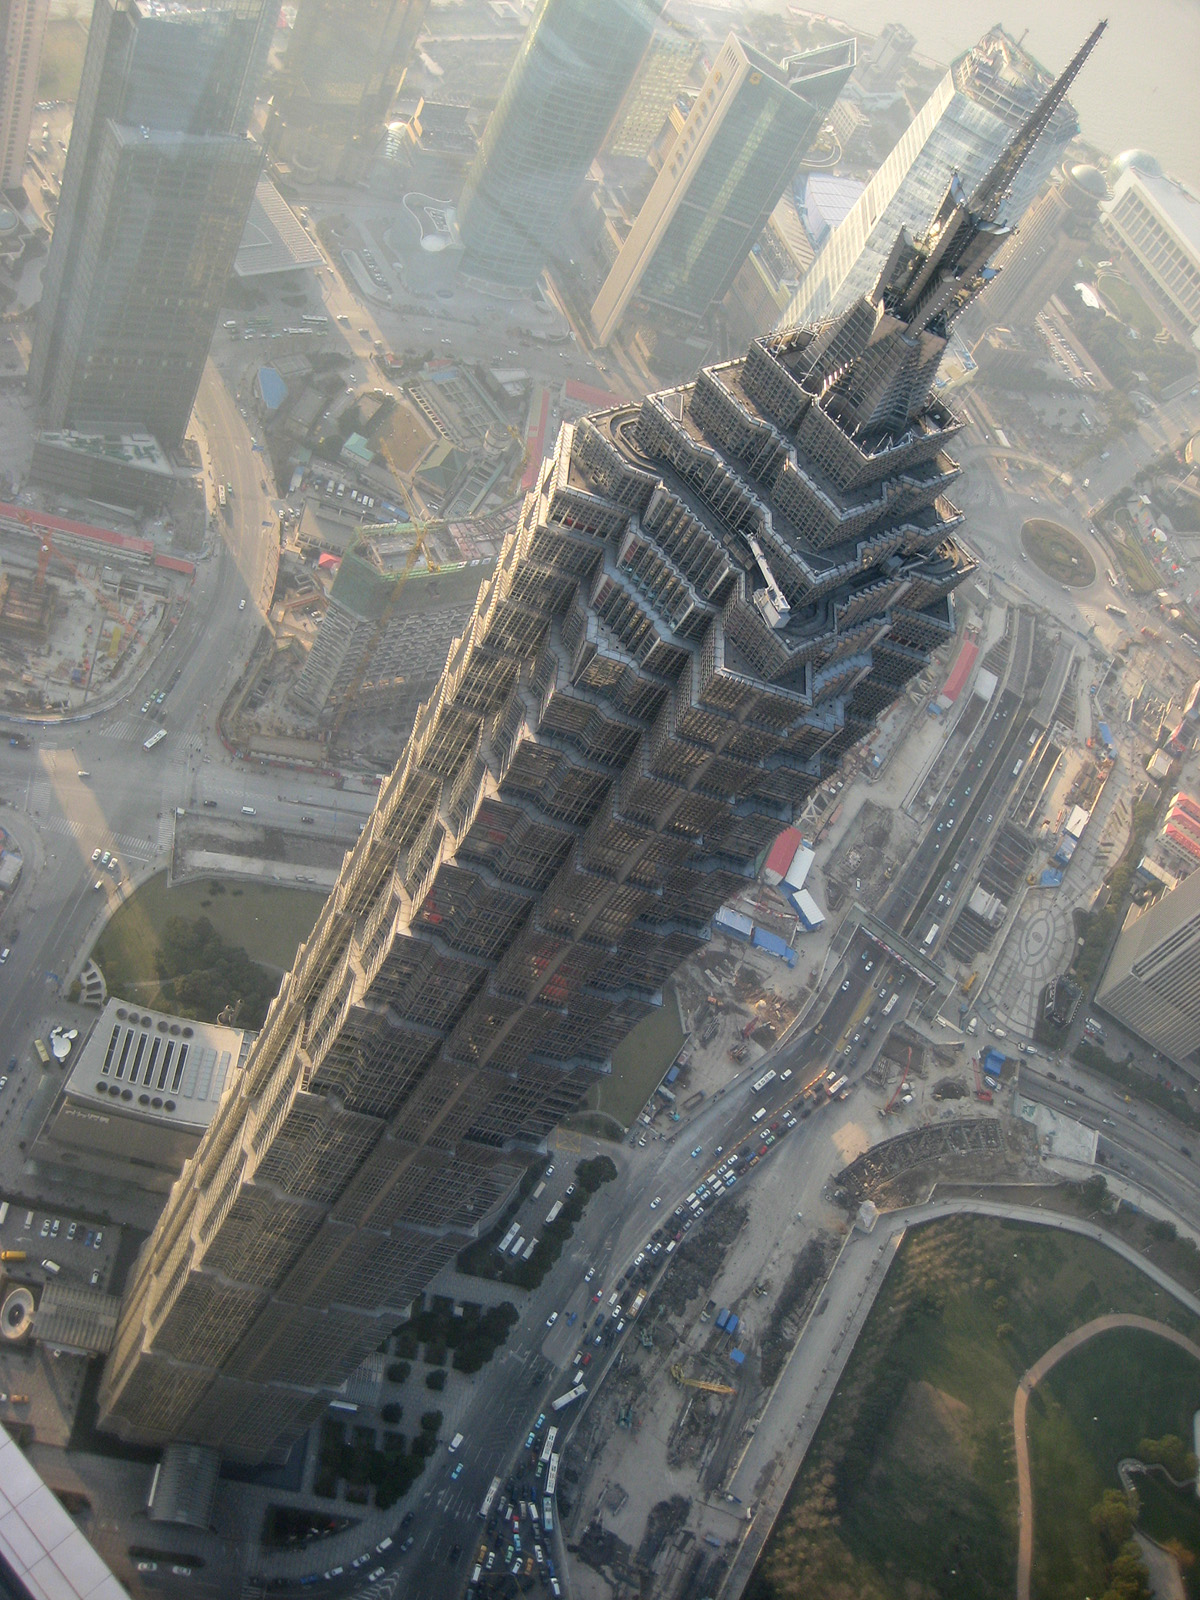 Bird's eye view of the Jin Mao Tower from the observatory floors of the Shanghai World Financial Centre